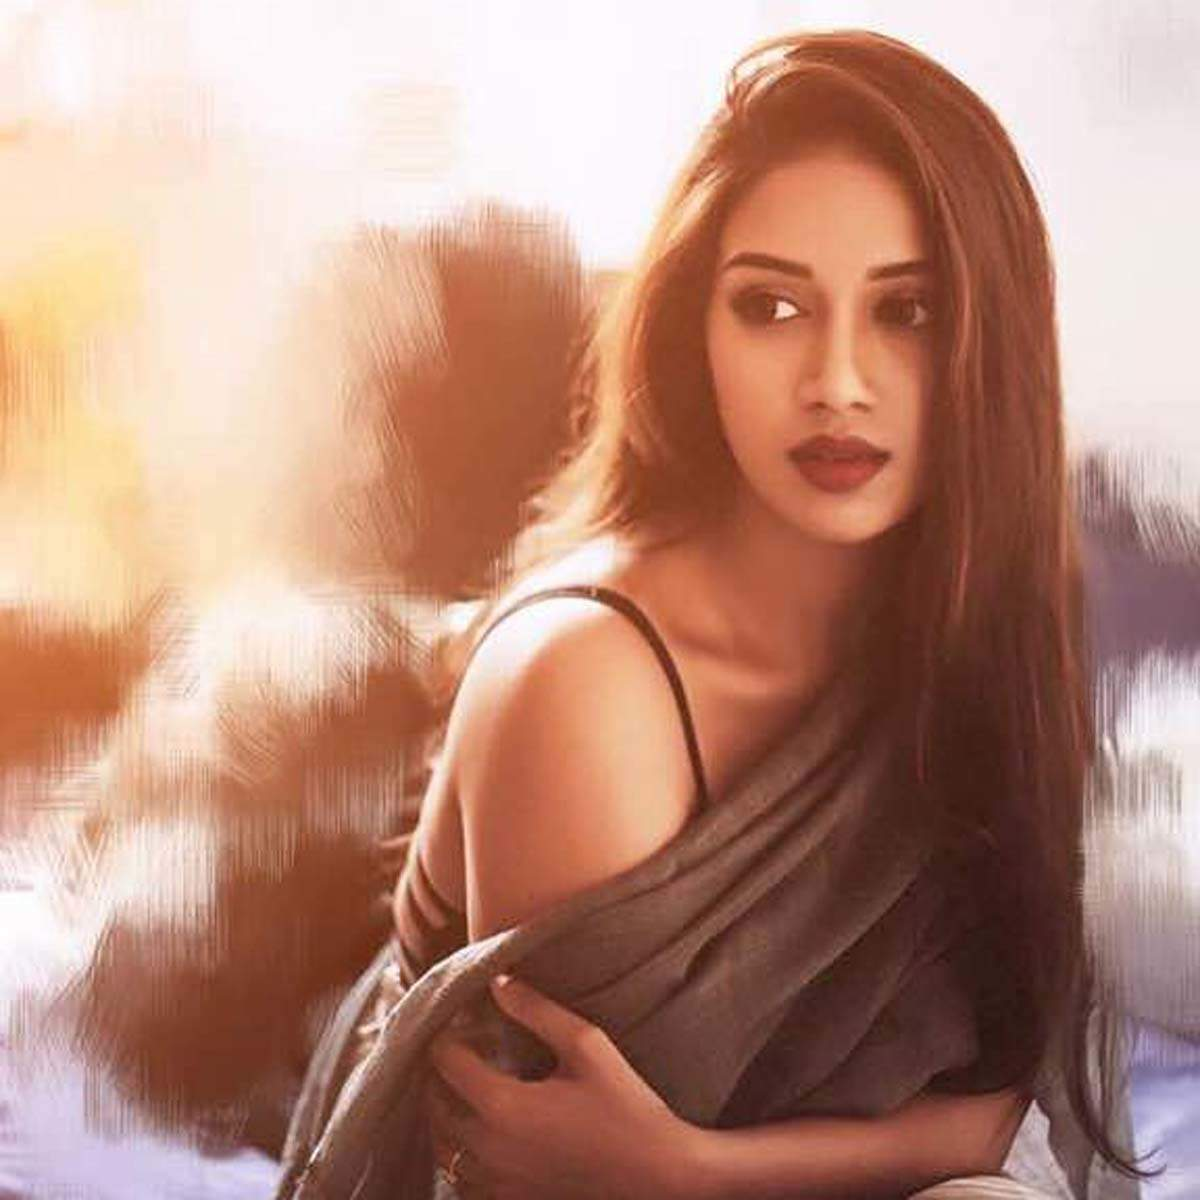 Nivetha Pethuraj can rock any outfit from sarees to dresses